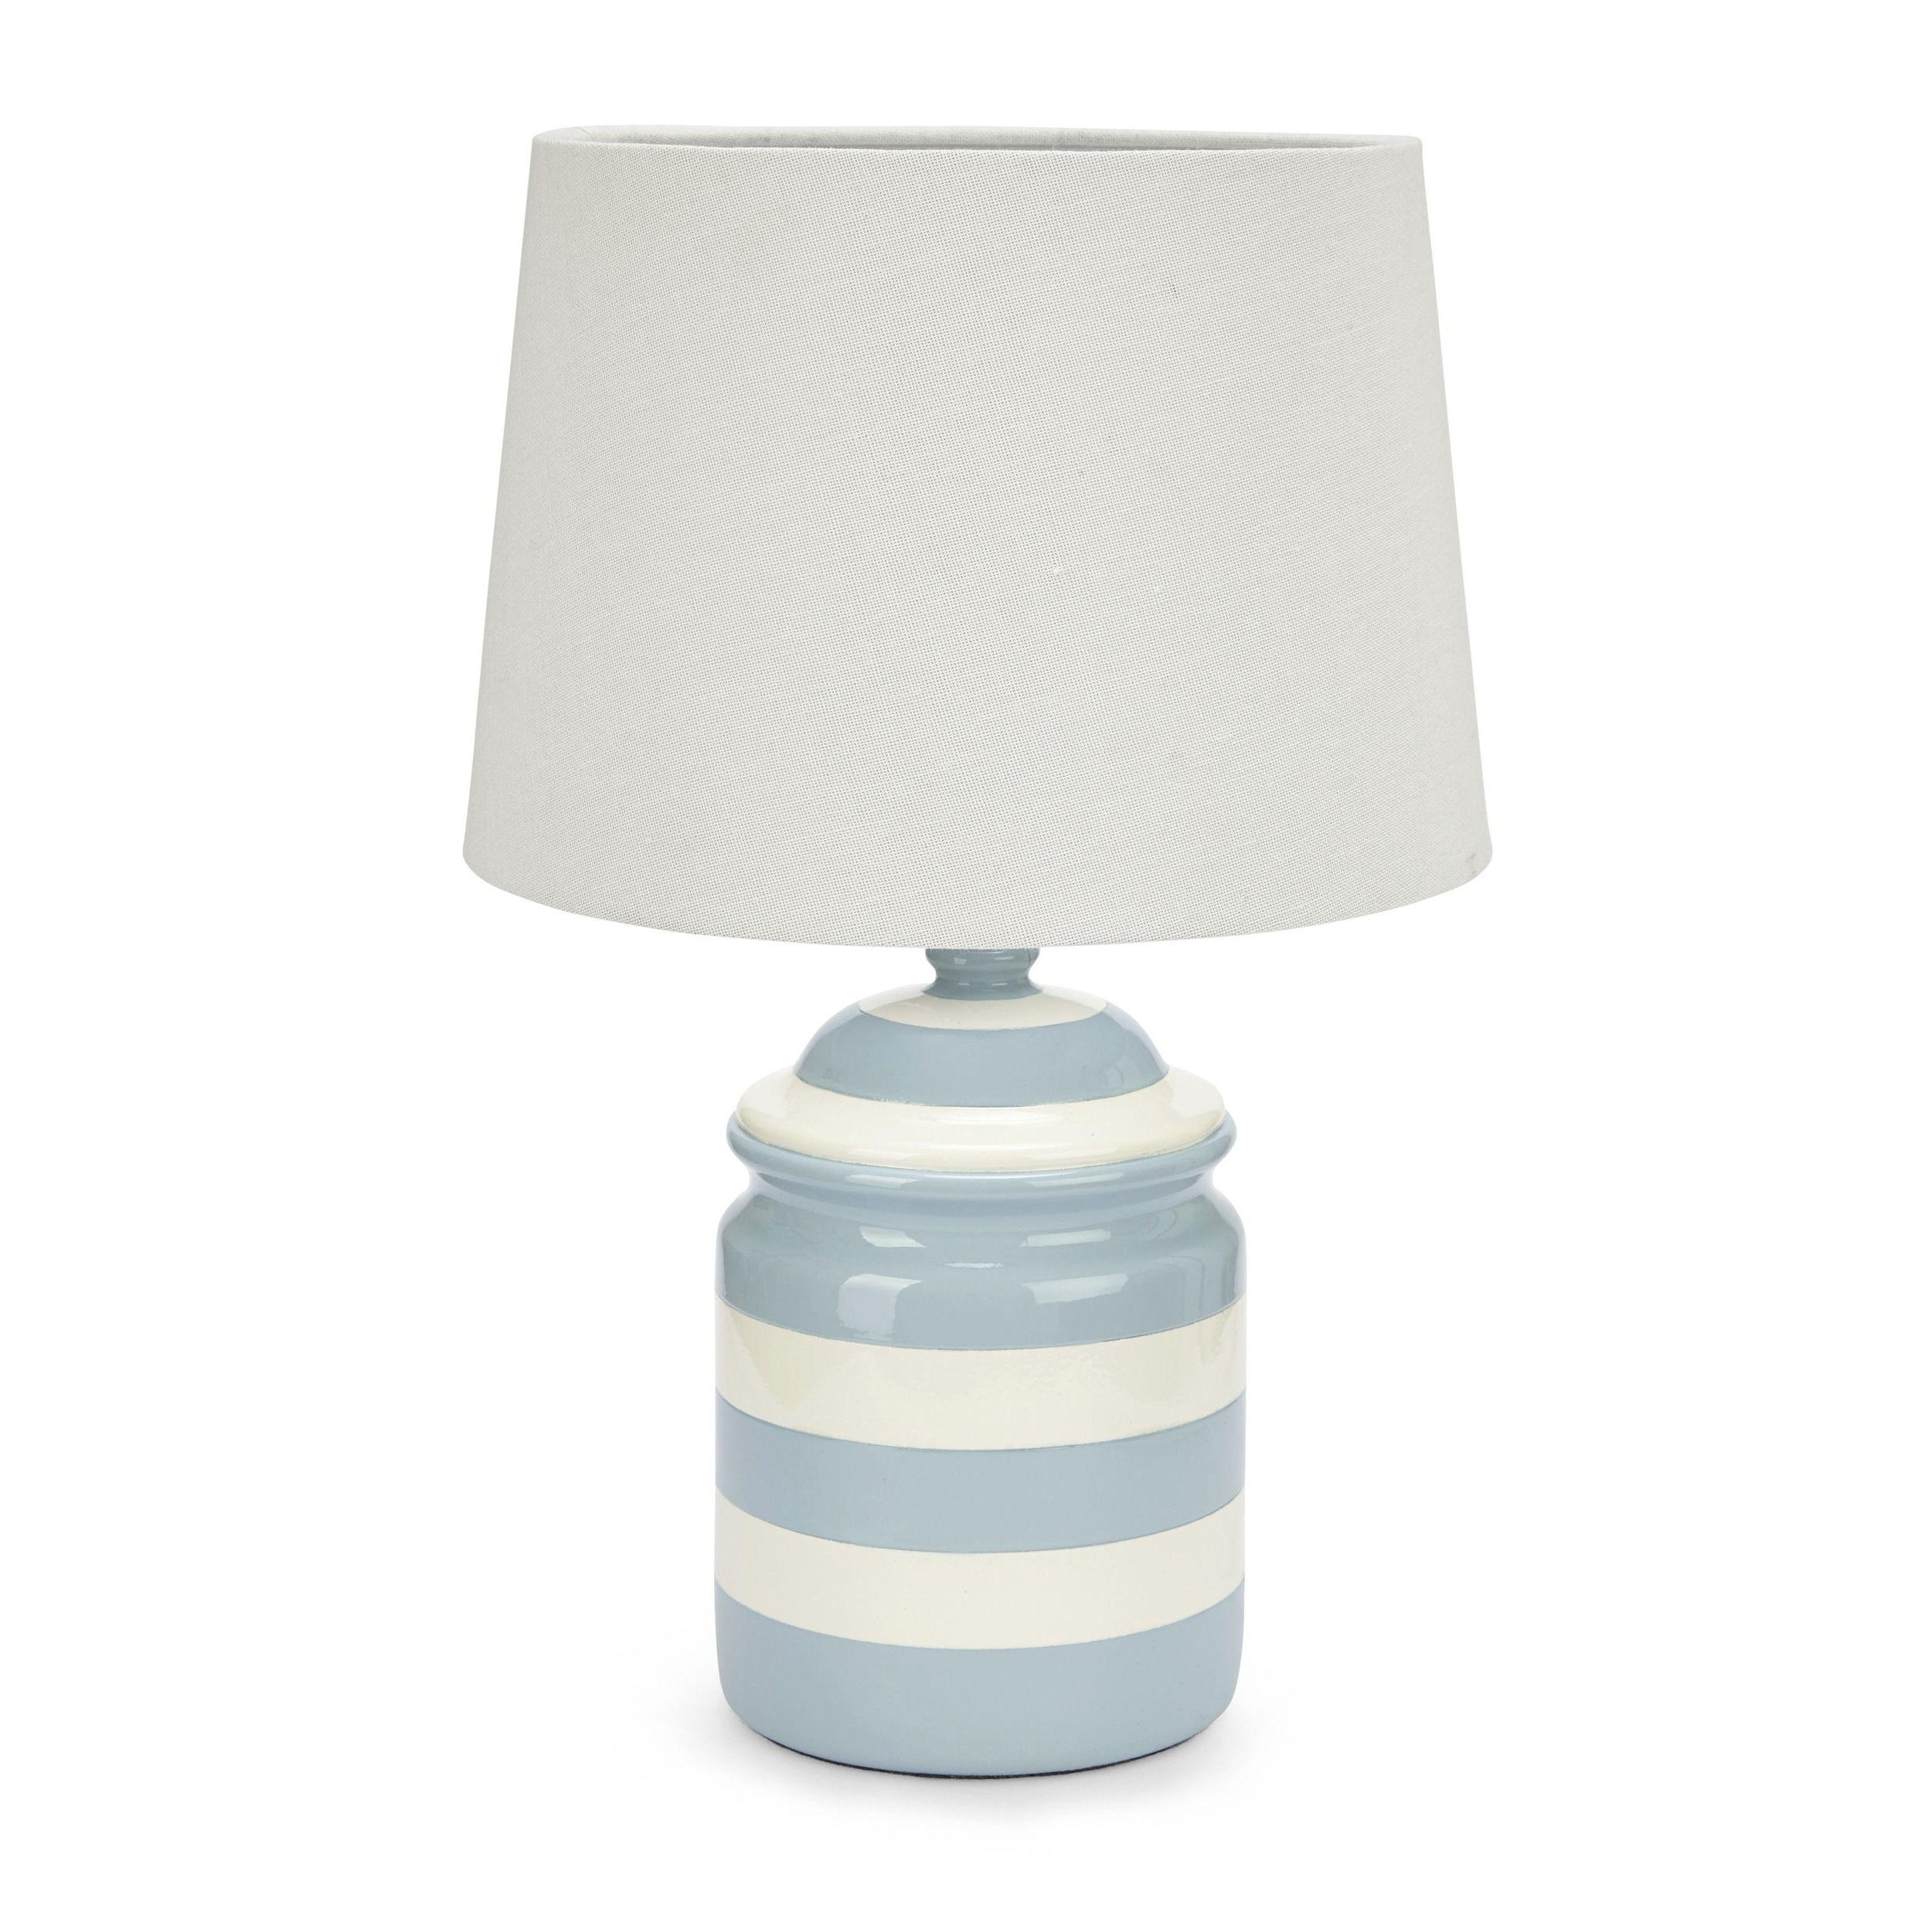 Pinterest Intended For Well Known Laura Ashley Table Lamps For Living Room (View 17 of 20)